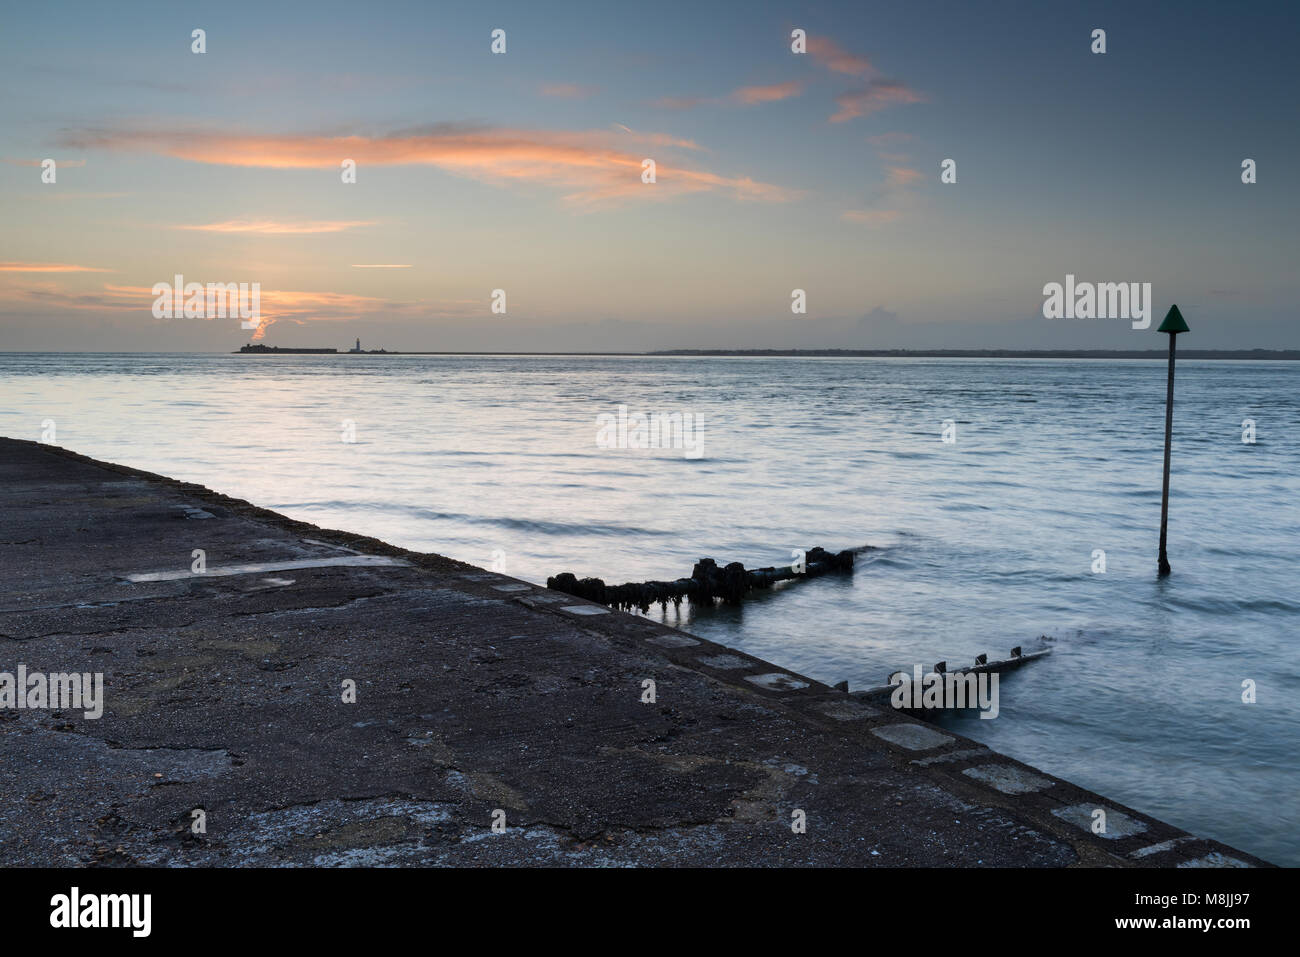 a beautiful and atmospheric seascape or landscape on the coast of the isle of wight with hurst castle and keyhaven - Stock Image